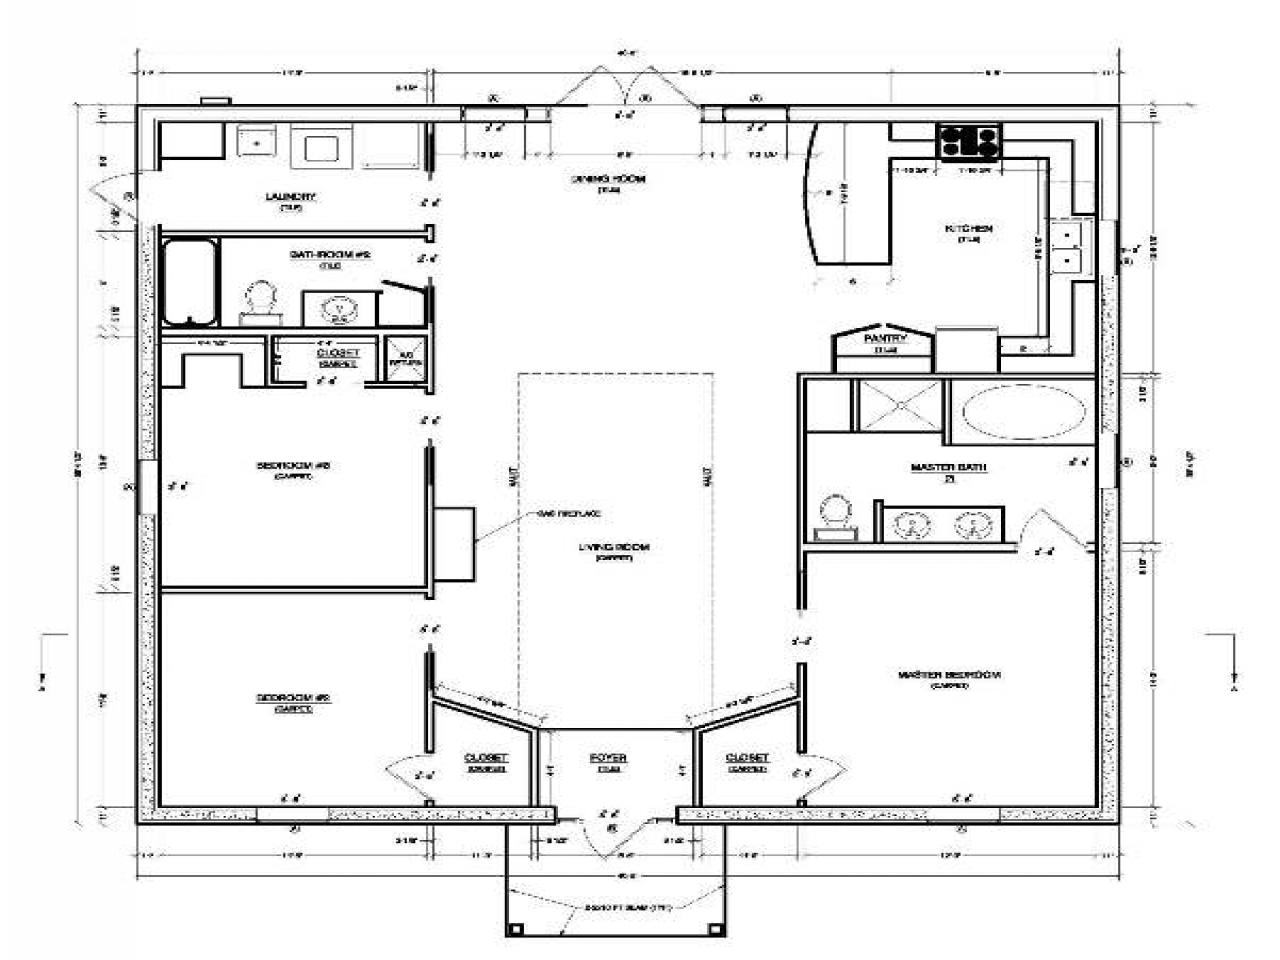 Best small house plans unique small house plans hpuse for Best ranch house plans 2016